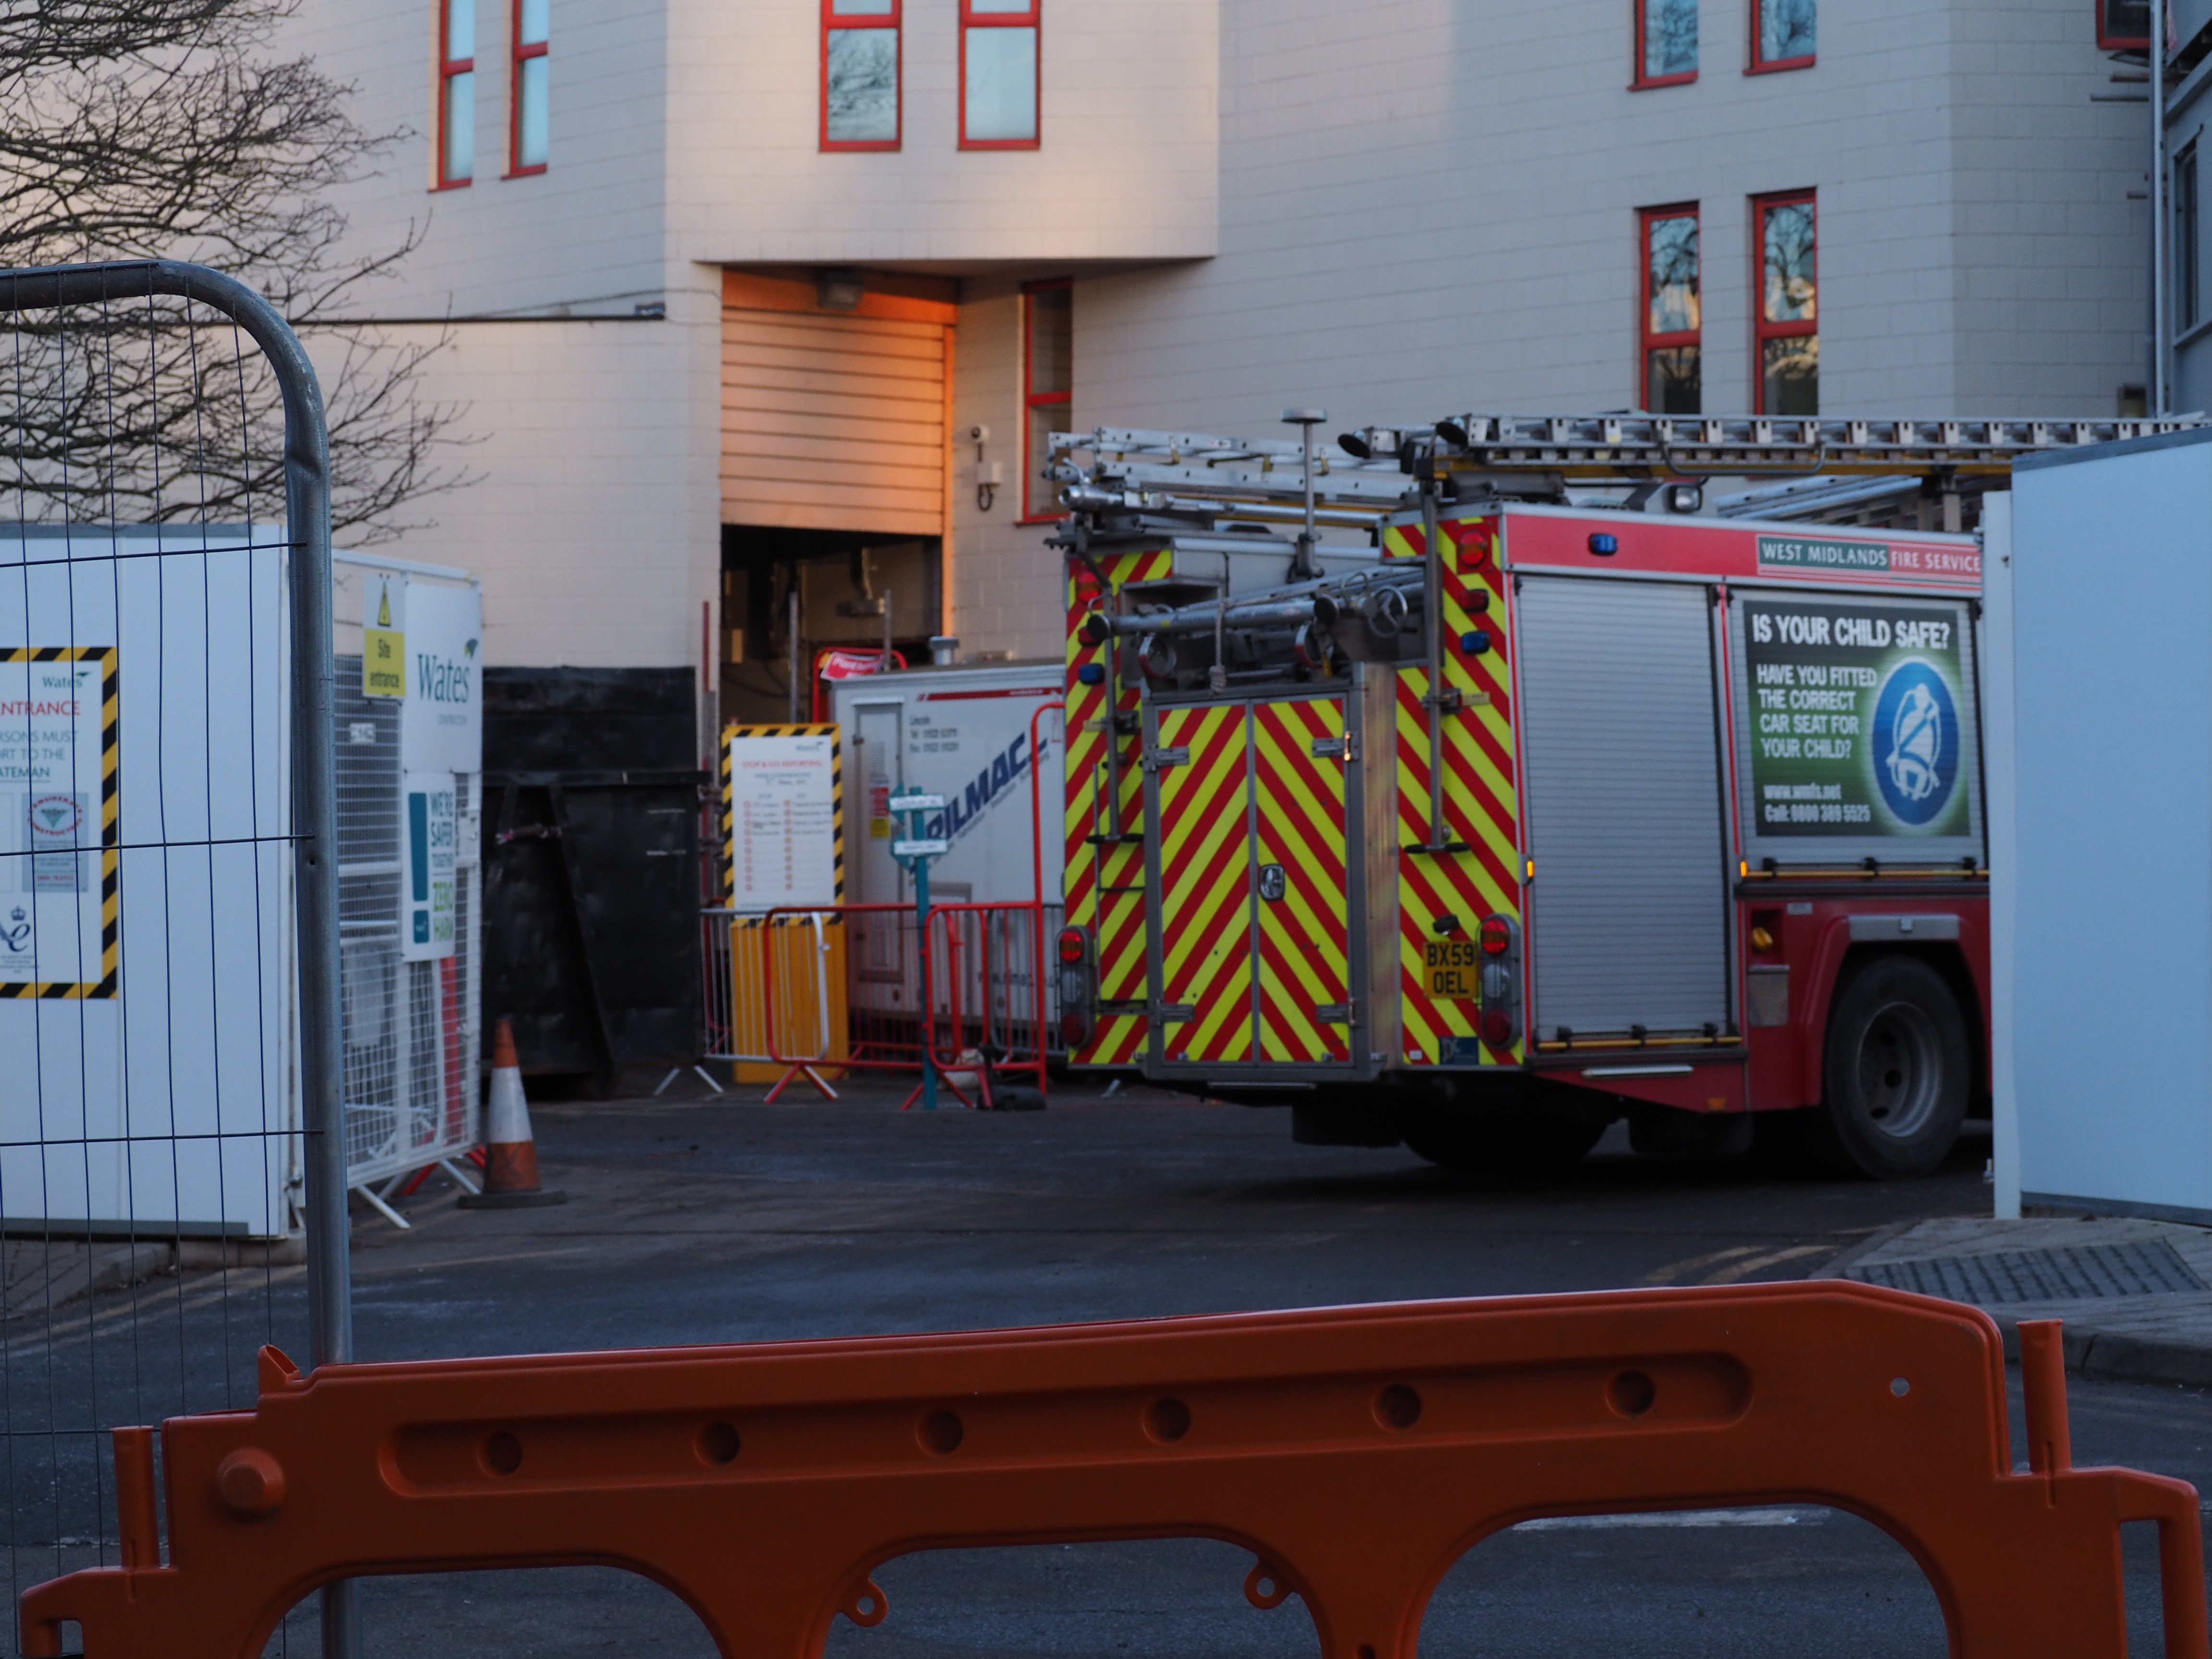 Fire engine outside Arts Centre.